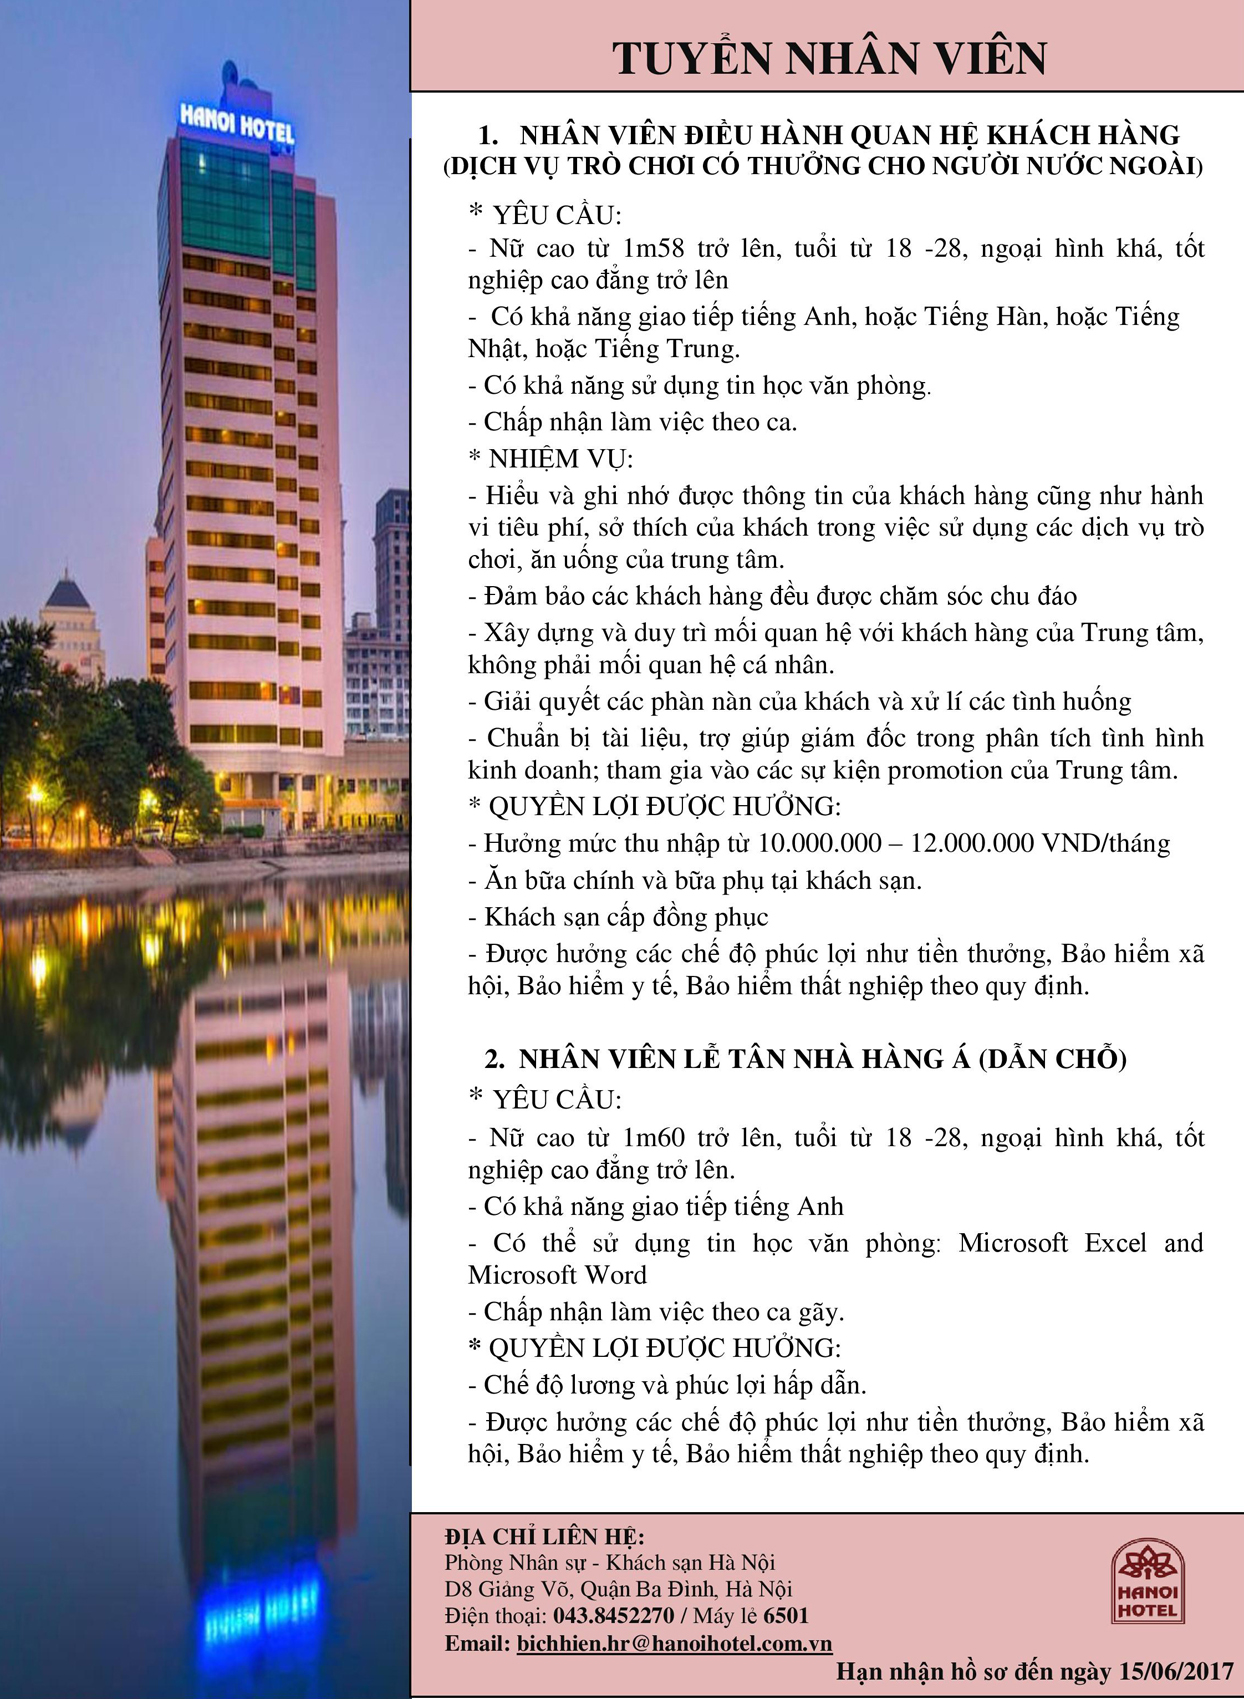 hanoi-hotel-tuyen-dung-thang-5-page-001